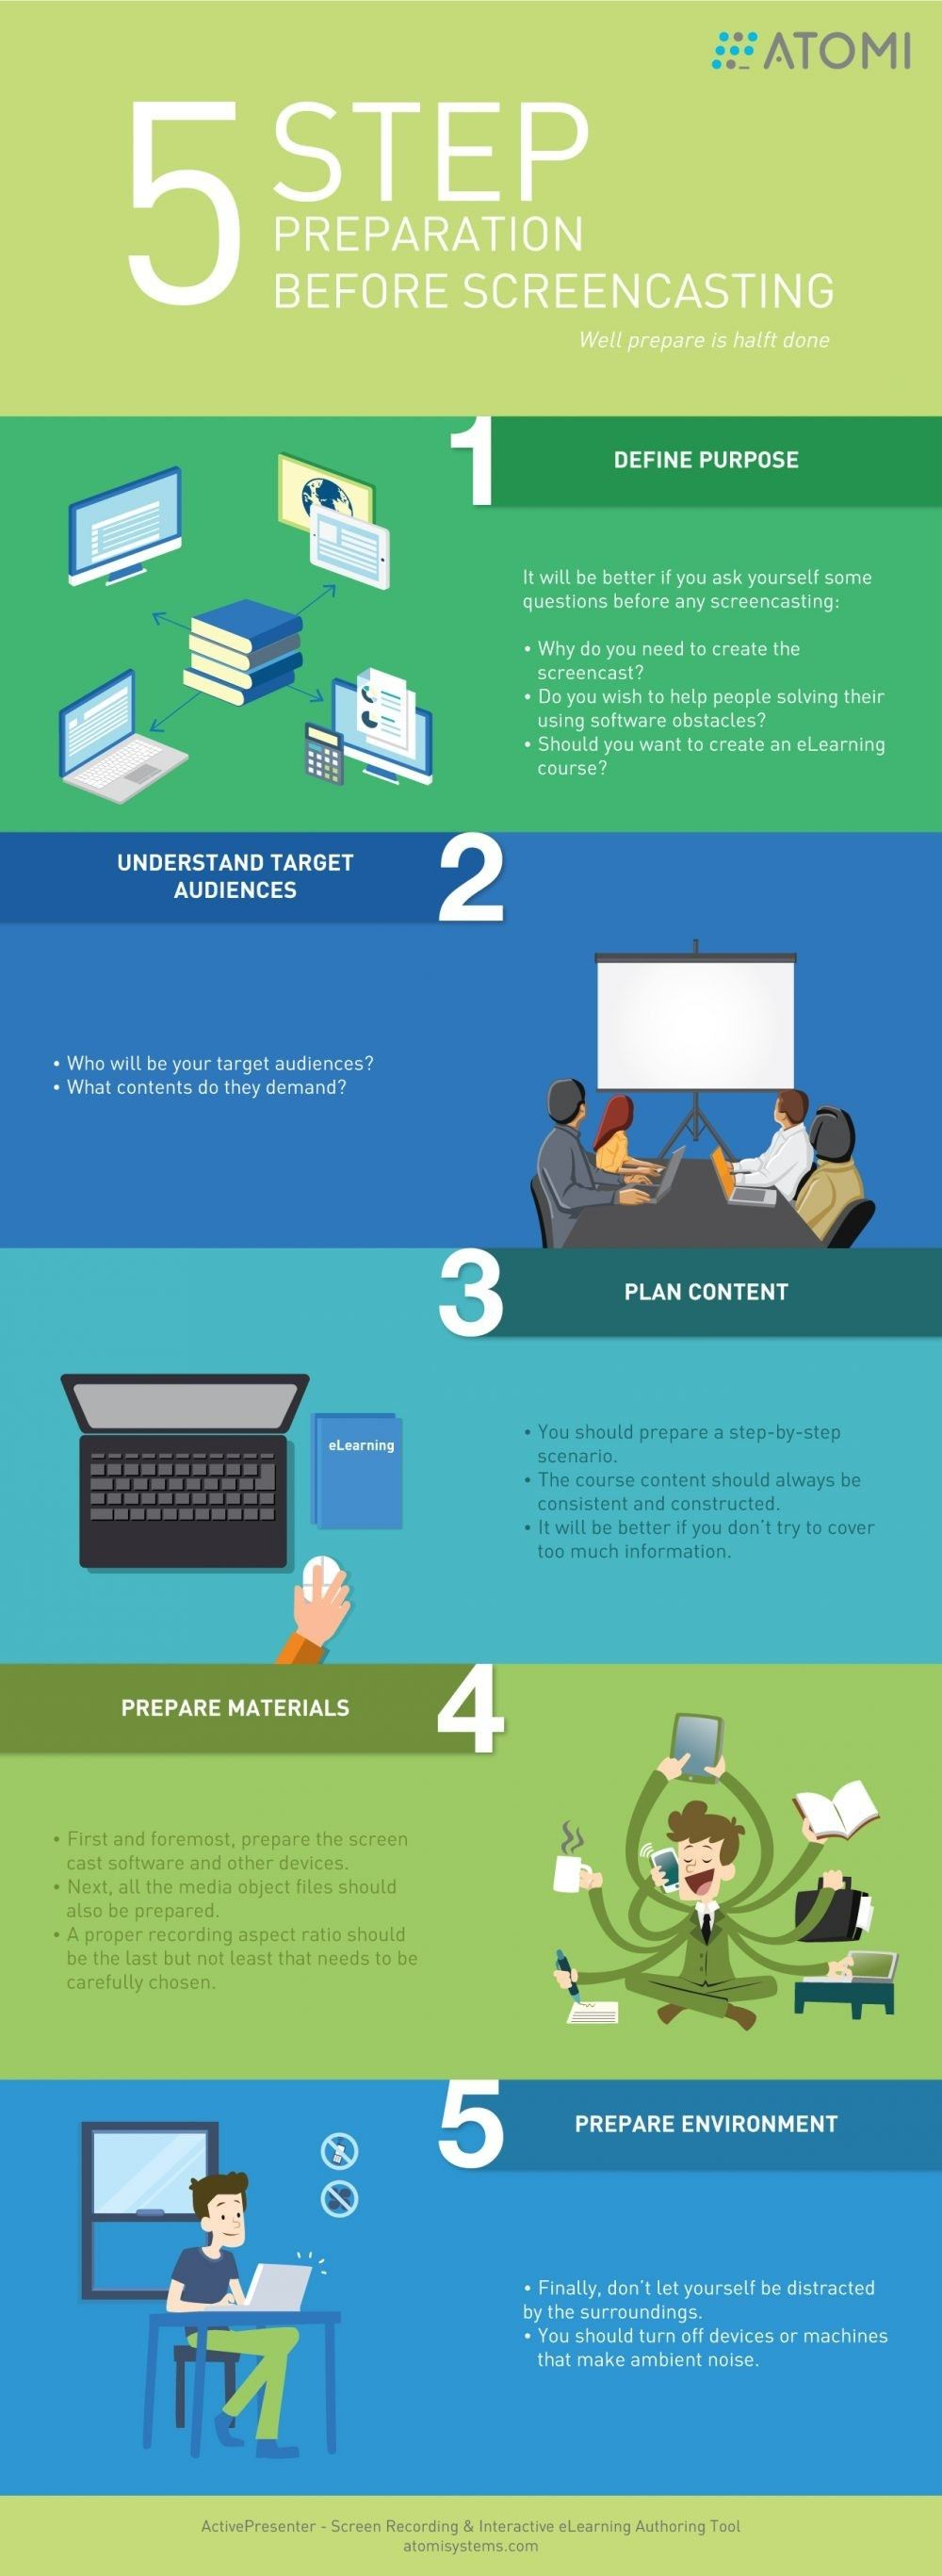 5 Step Preparation Before a Screencast Infographic thumbnail